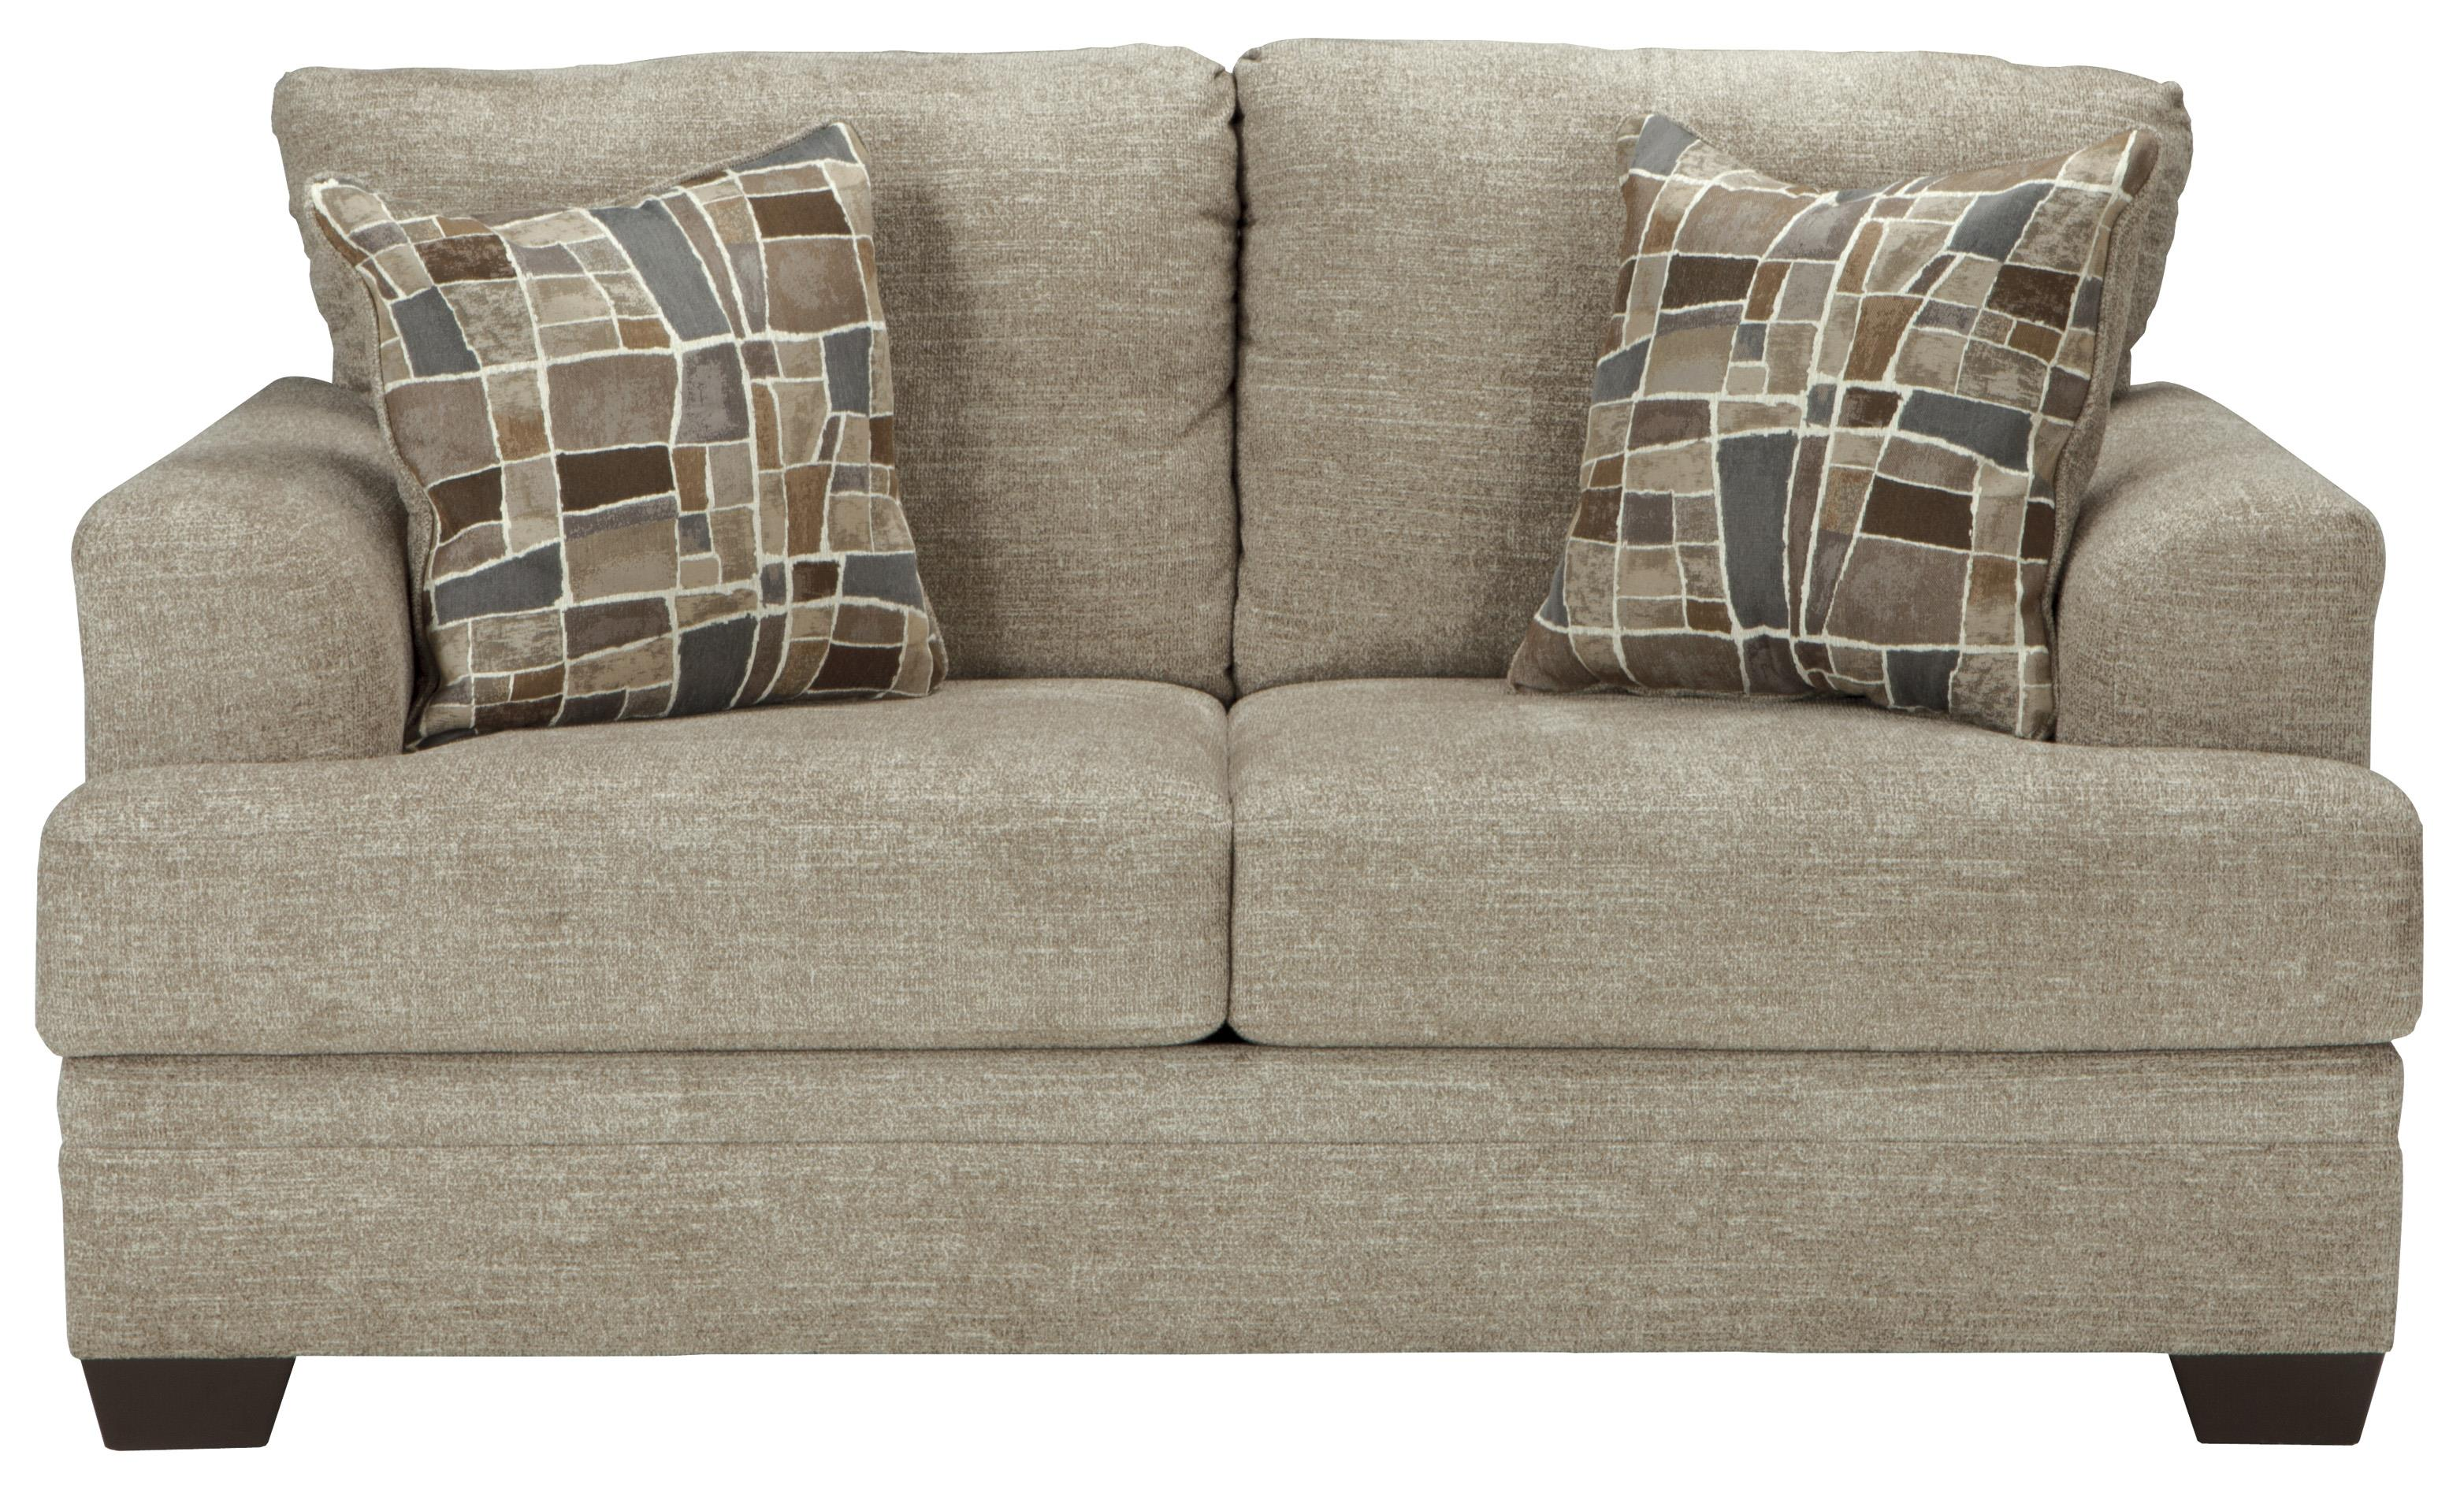 Benchcraft Barrish Loveseat - Item Number: 4850135